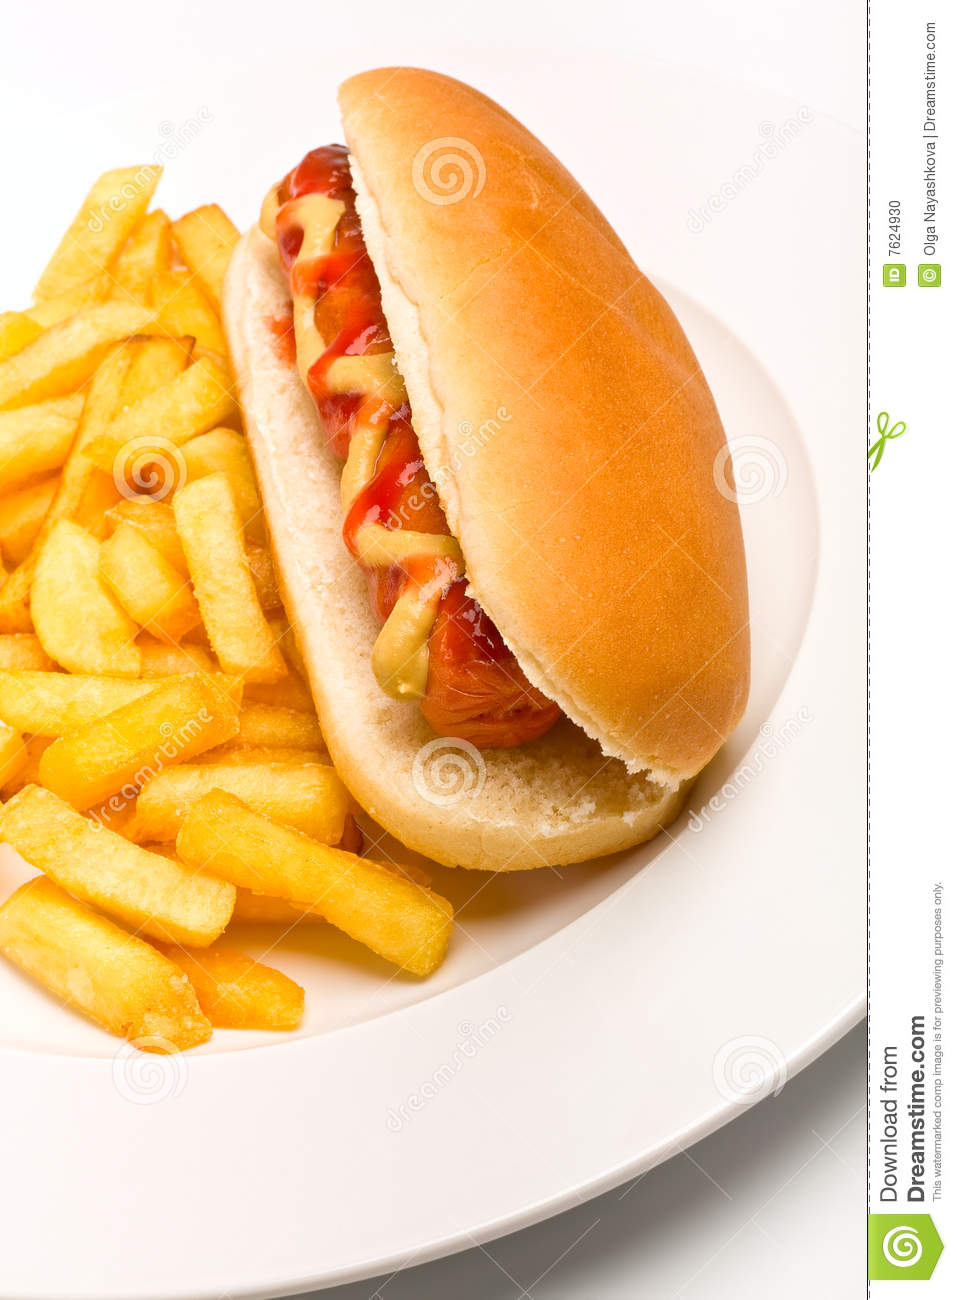 hot dog avec de la moutarde le ketchup et les fritures photo stock image 7624930. Black Bedroom Furniture Sets. Home Design Ideas